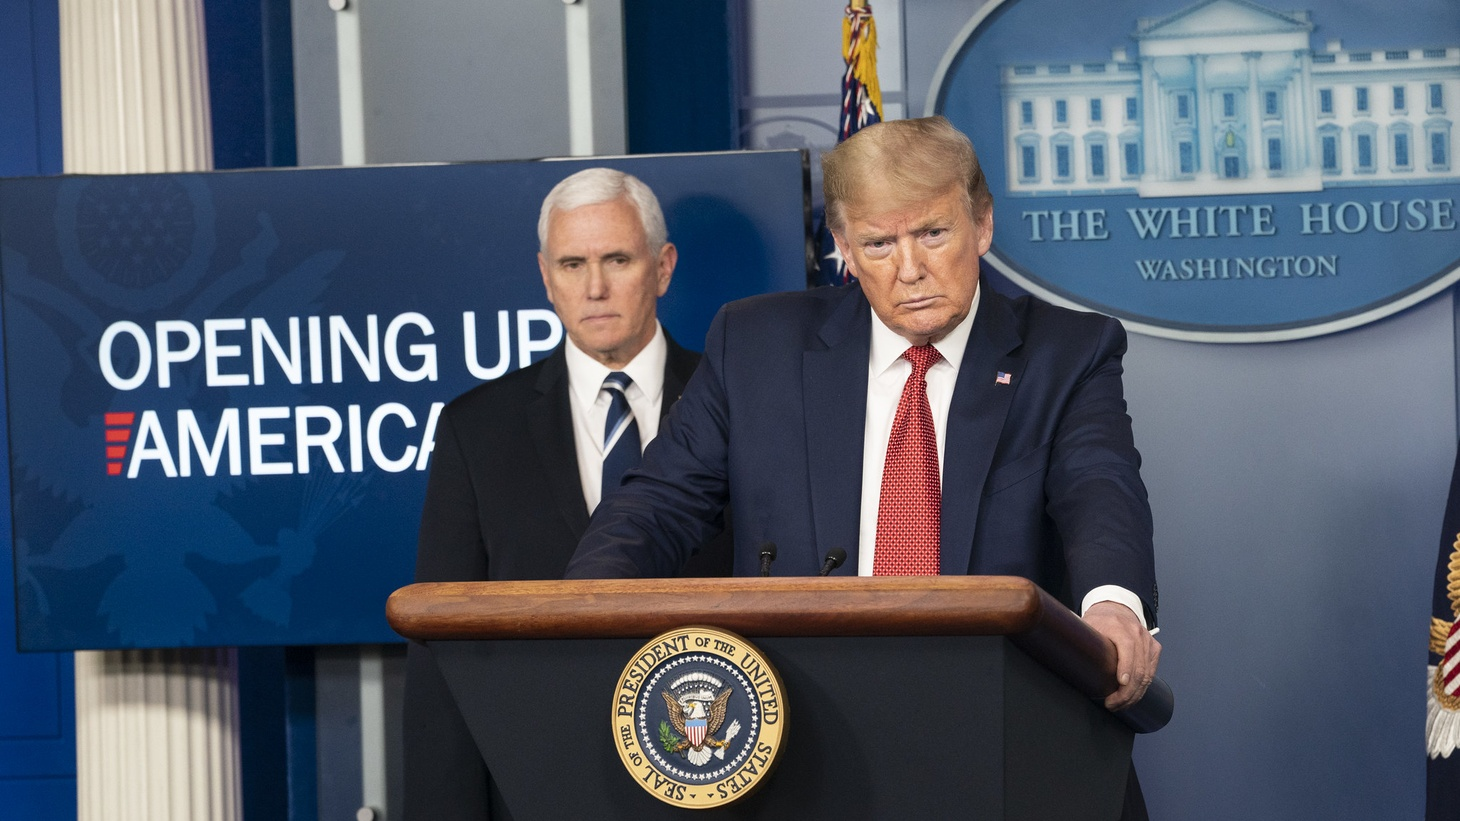 President Donald J. Trump, joined by Vice President Mike Pence and members of the White House COVID-19 Coronavirus task force, delivers remarks and answers questions from members of the press during a coronavirus update briefing Thursday, April 16, 2020, in the James S. Brady White House Press Briefing Room.